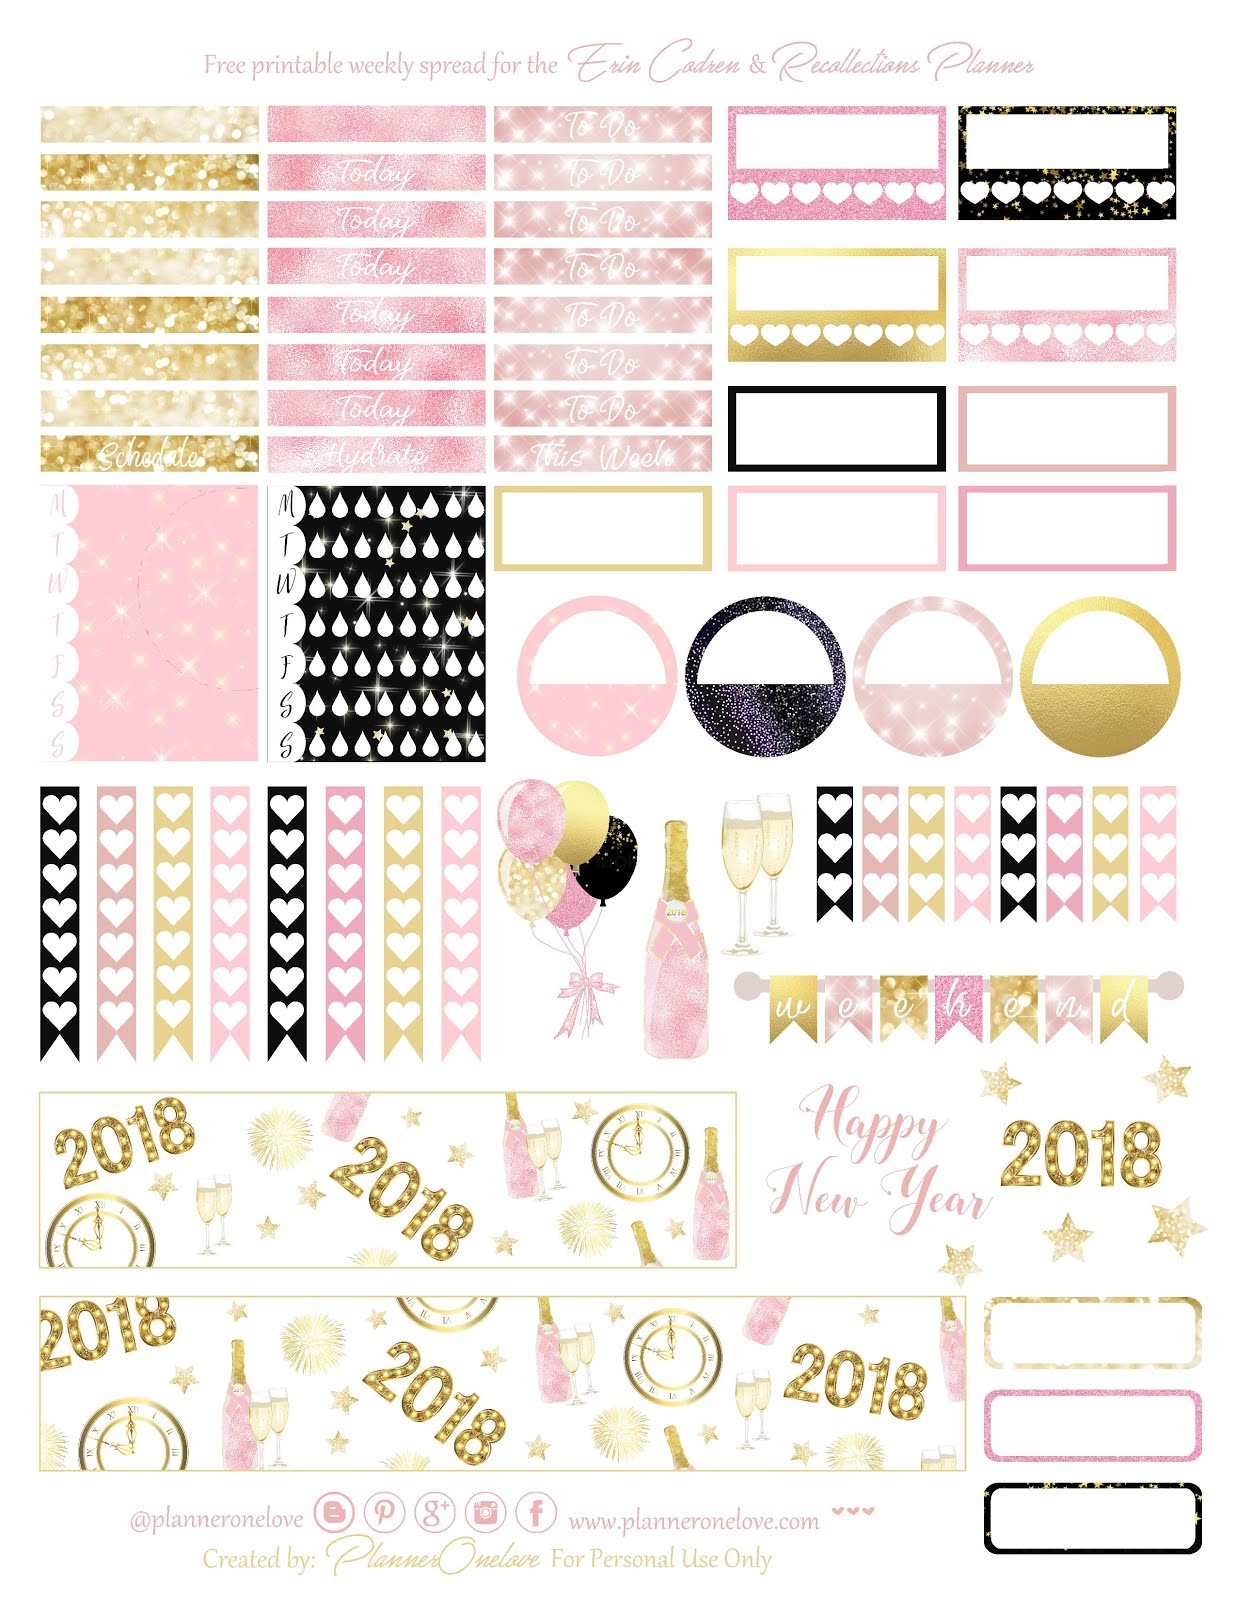 Free New Year S Printable Planner Sticker Spread For The Erin